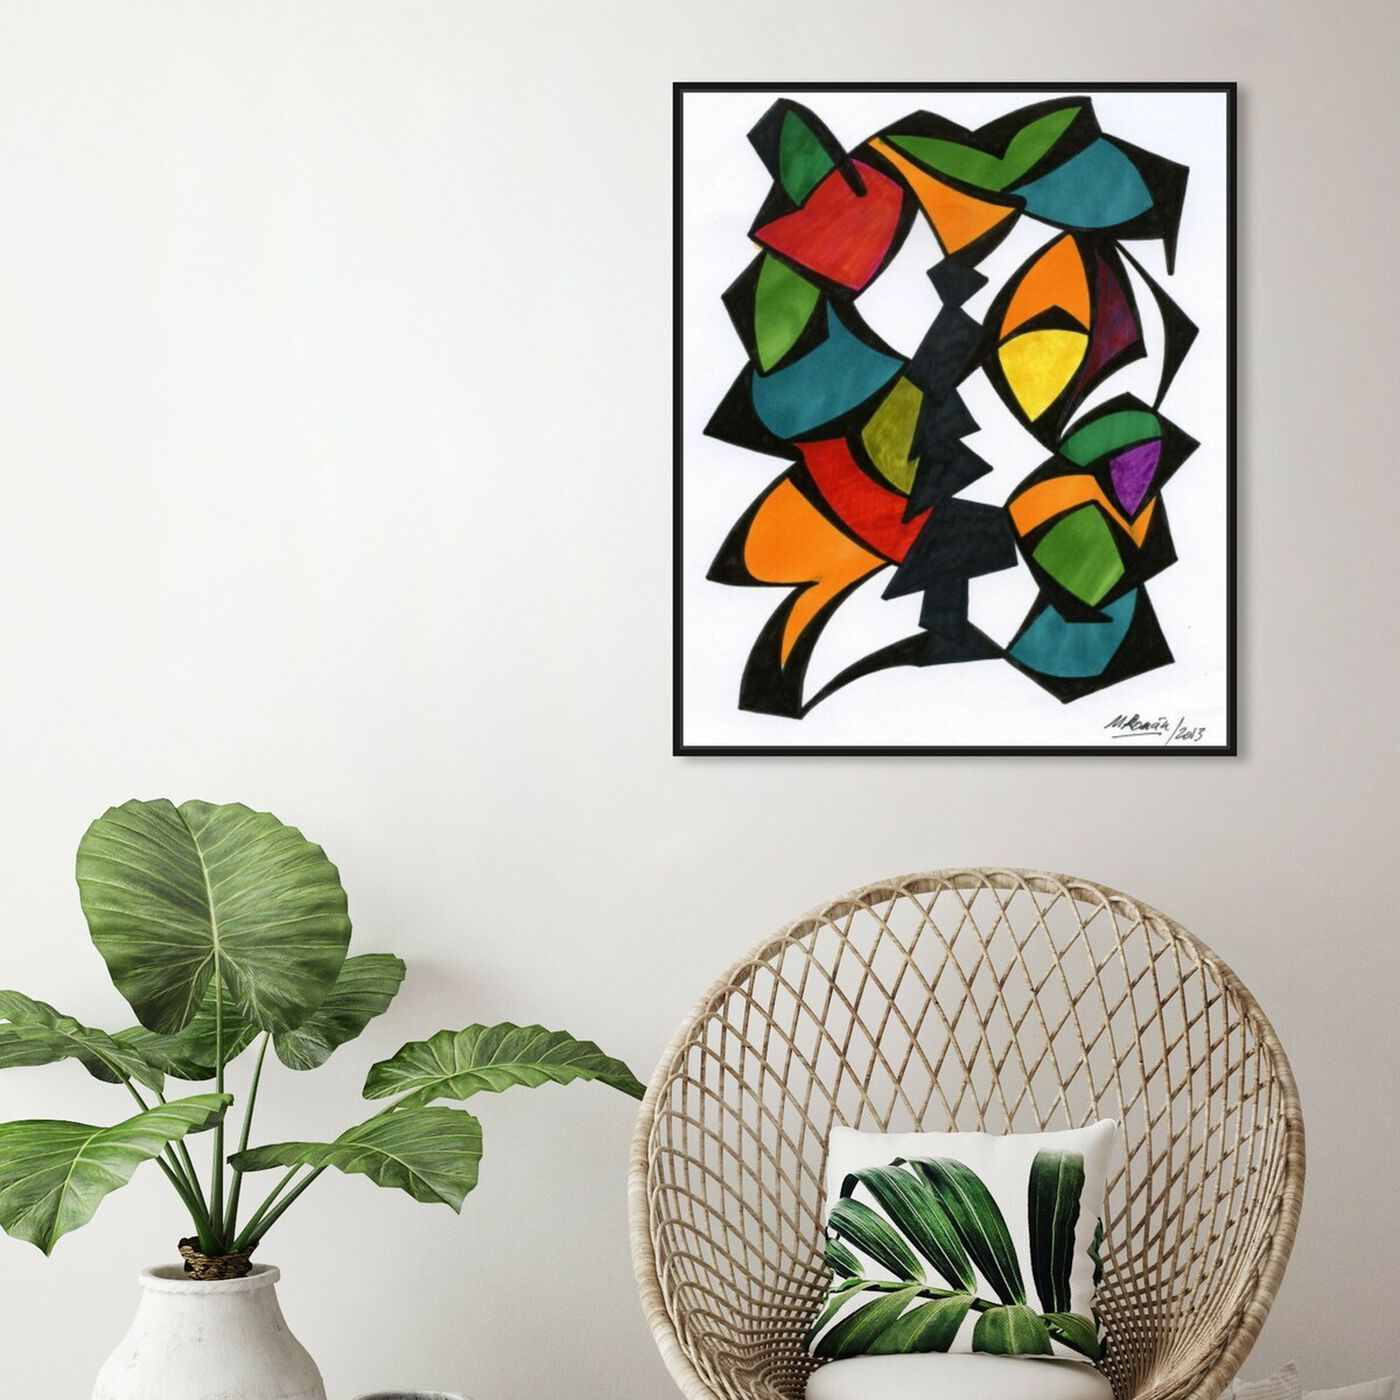 Hanging view of Rhythmus featuring abstract and shapes art.